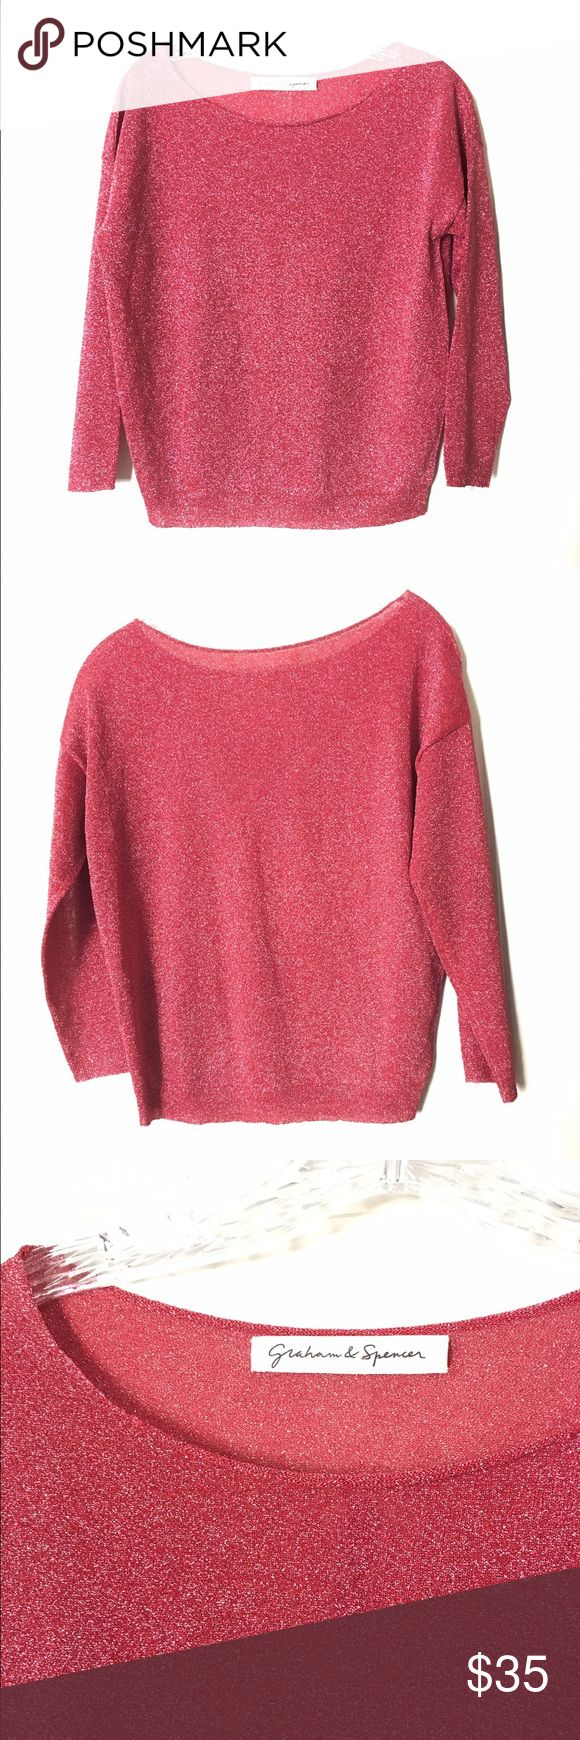 Graham & Spencer Red Metallic 3/4 Sleeve Top Sparkly metallic red top by Graham & Spencer features a crewneck and 3/4 sleeves. Size medium. The fabric content is 66% polyester and 34% metallic. Graham & Spencer Tops